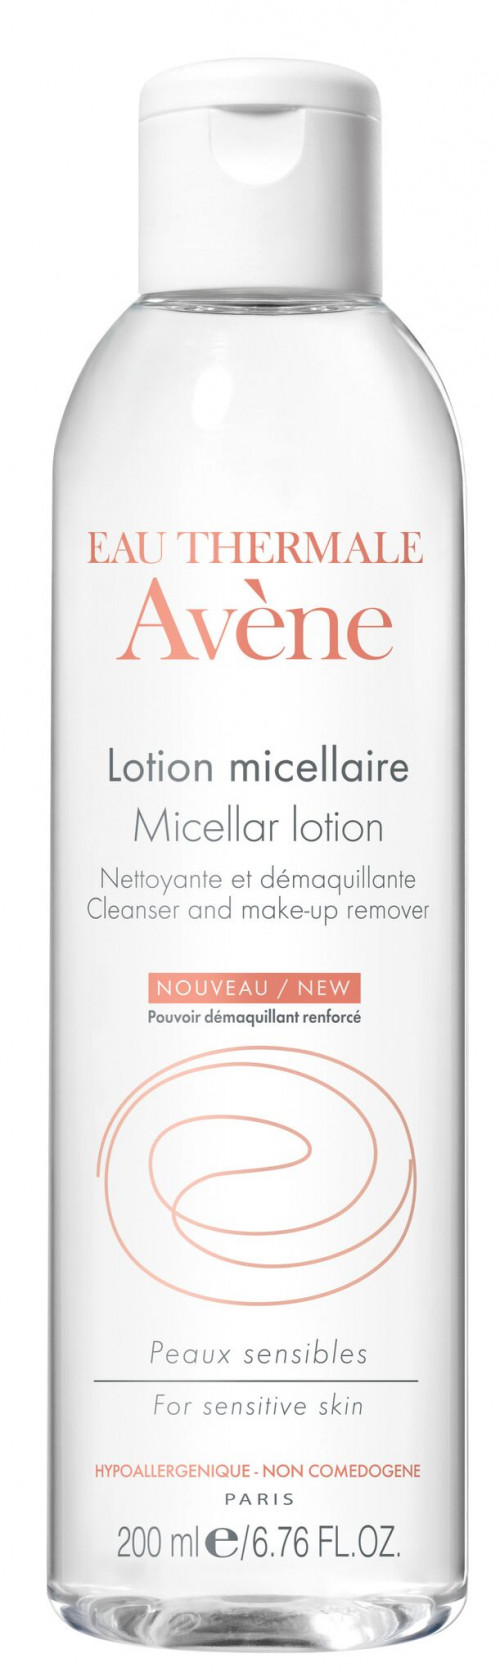 Micellar Lotion & Makeup Remover by Avène